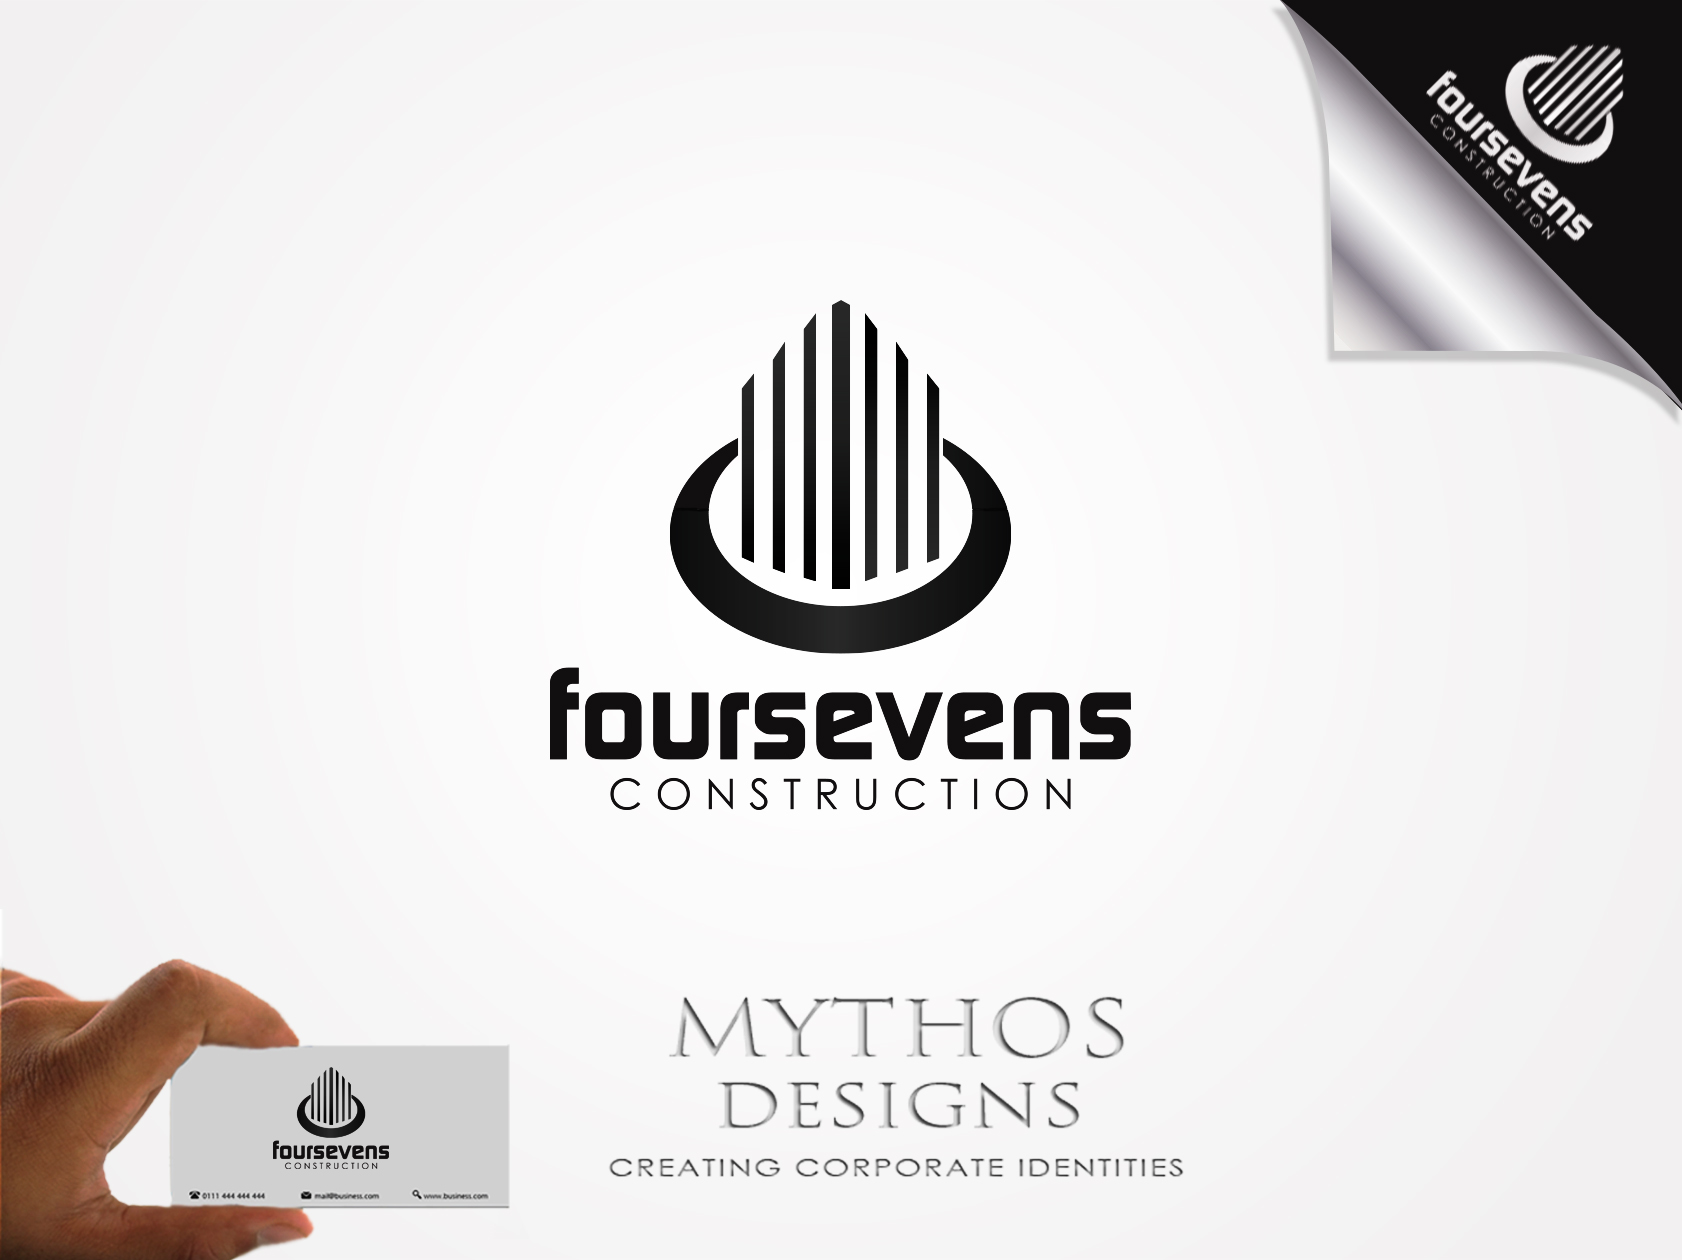 Logo Design by Mythos Designs - Entry No. 140 in the Logo Design Contest New Logo Design for foursevens.